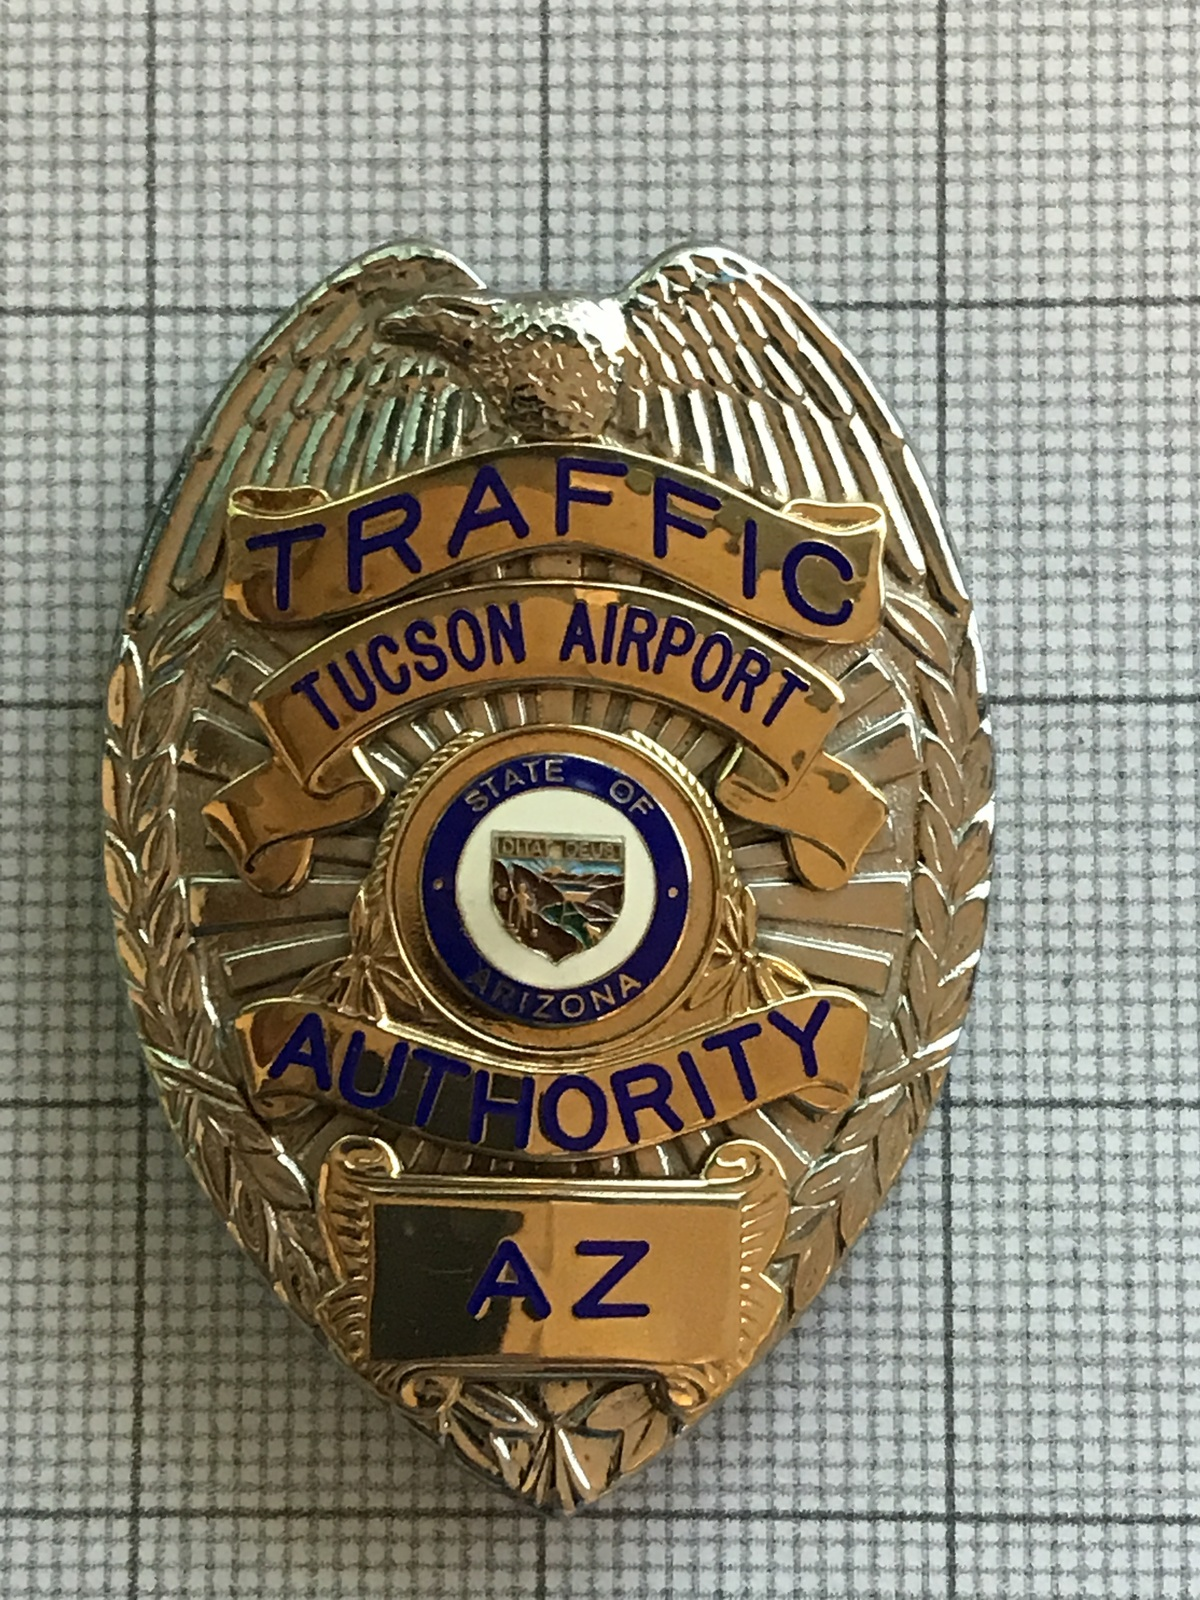 Primary image for Tucson Arizona Airport Traffic Authority Obsolete Badge